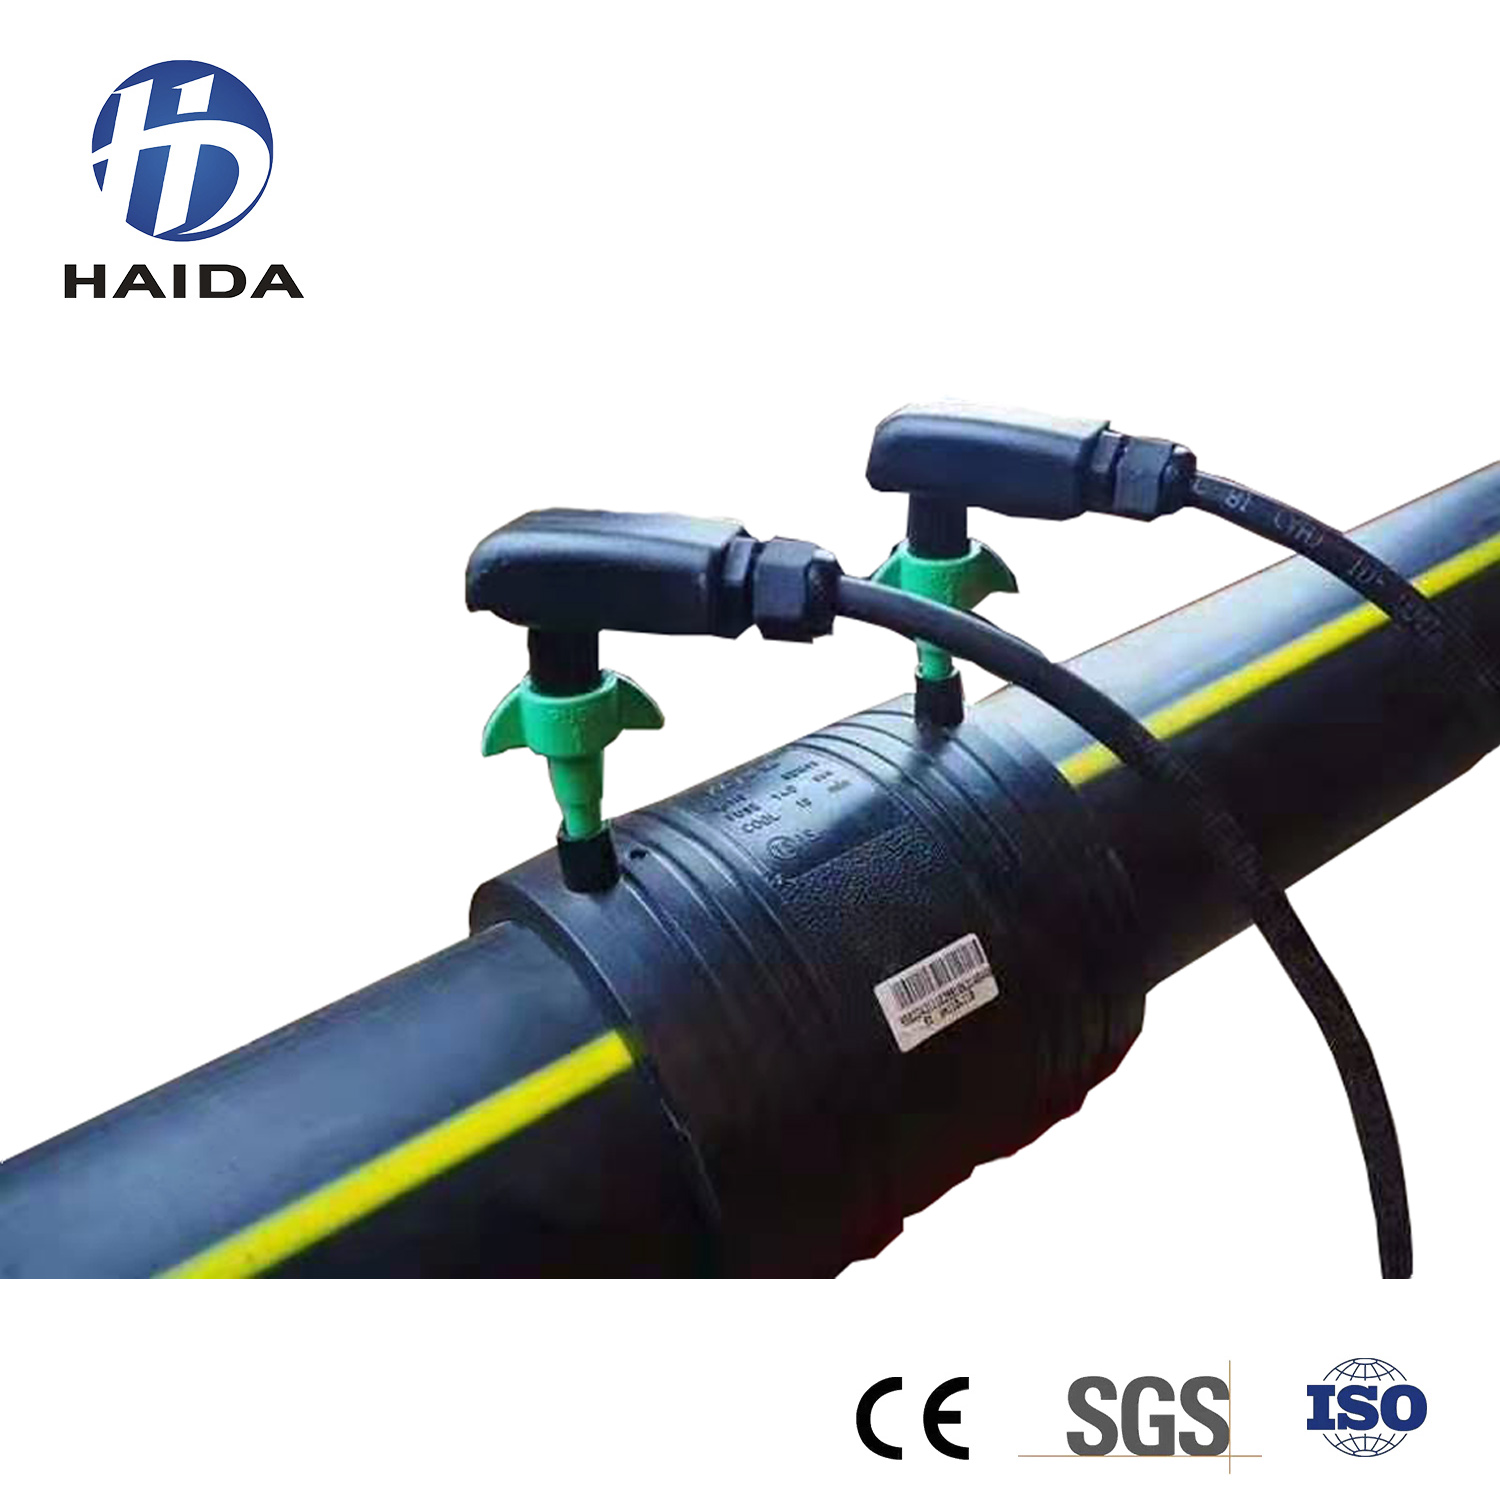 Welding machine welding deformation prevention measures